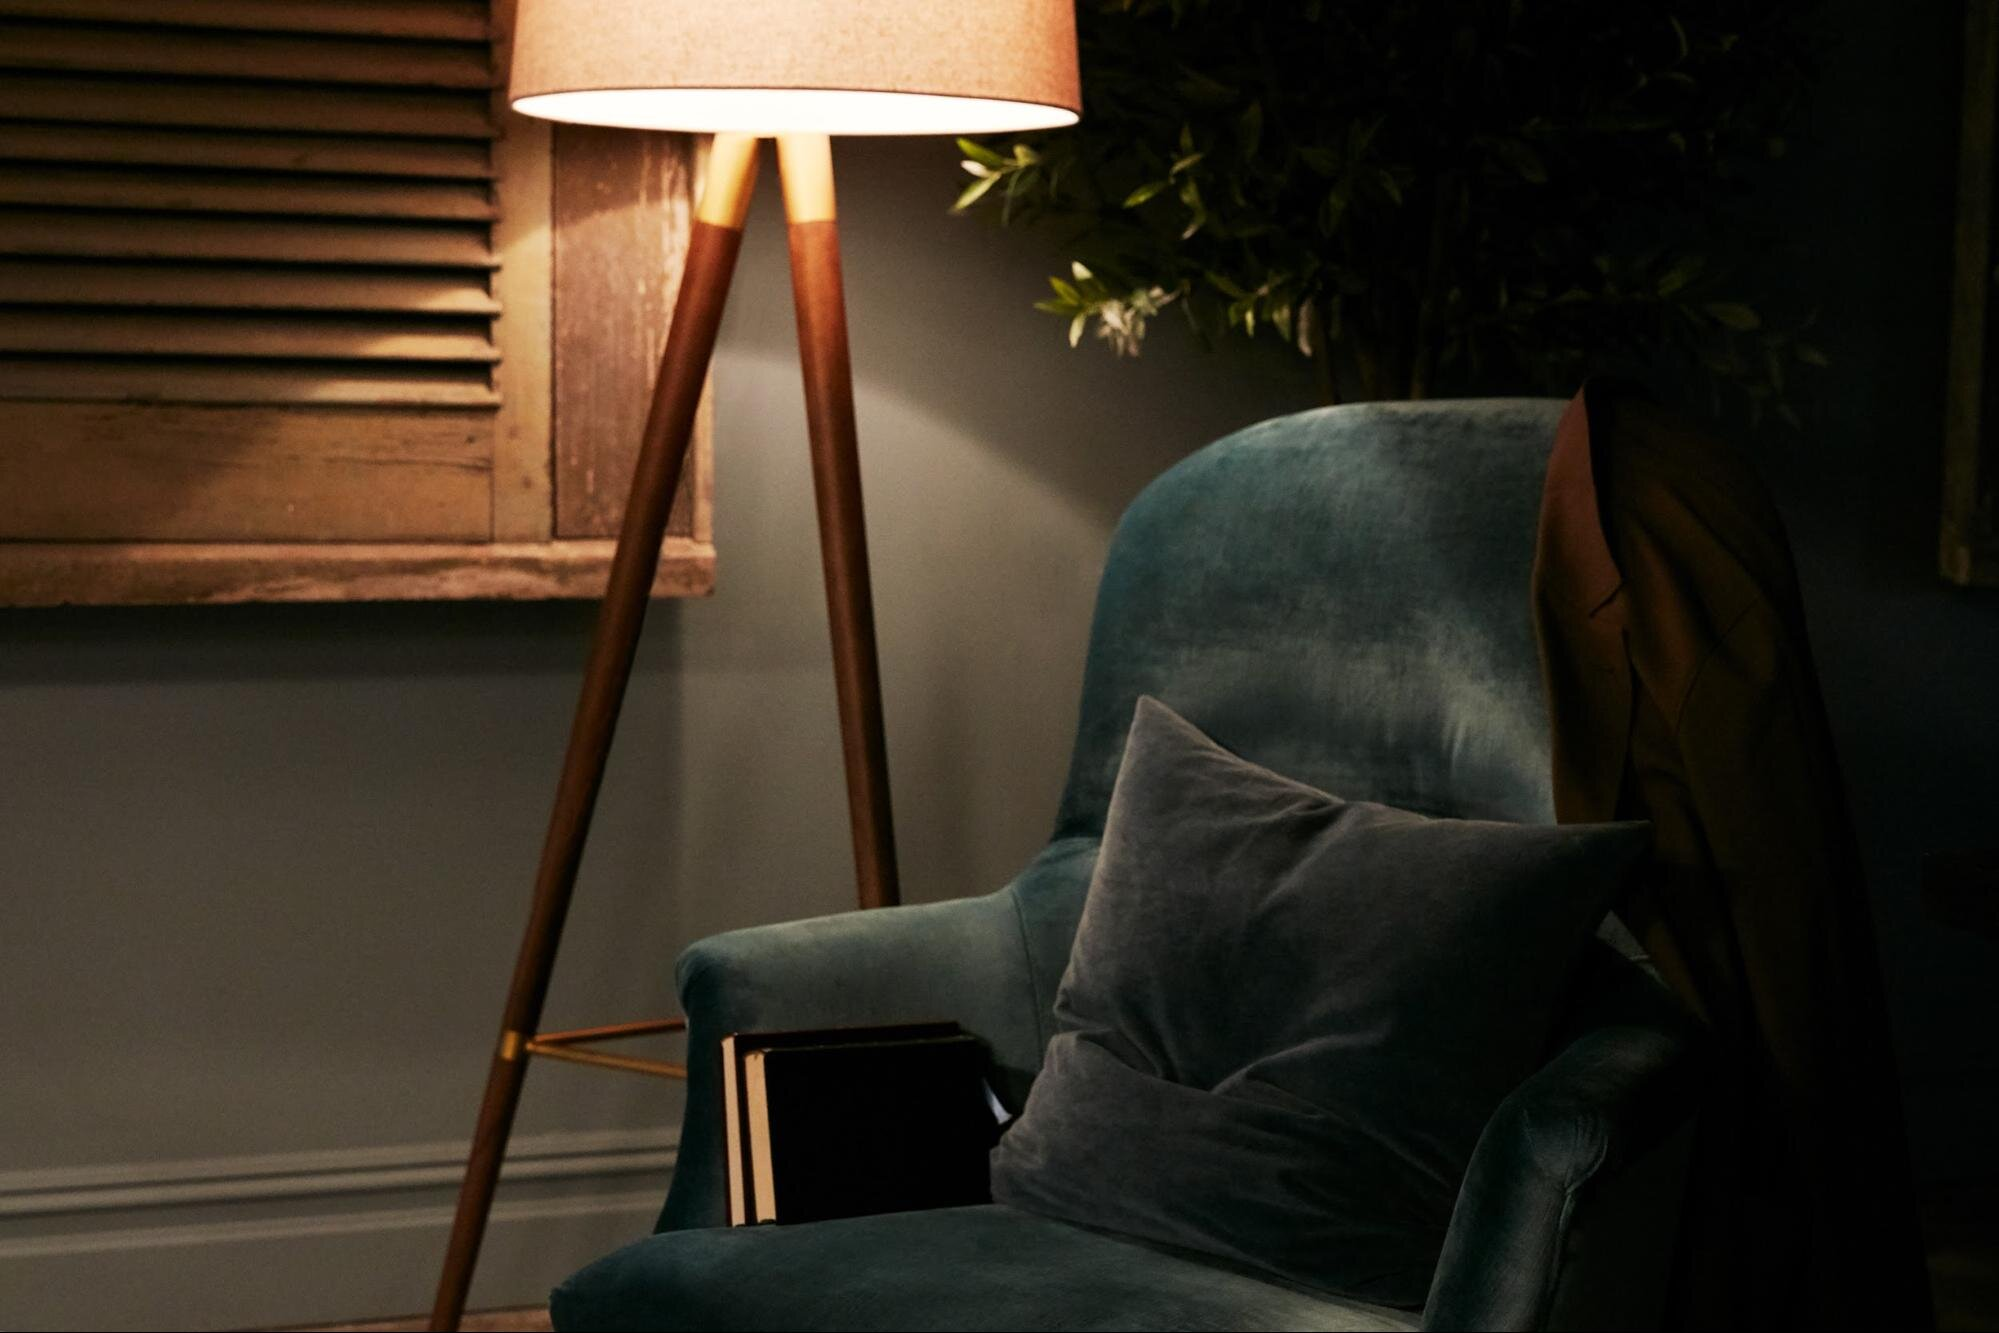 A couch and lamp in a work from home space